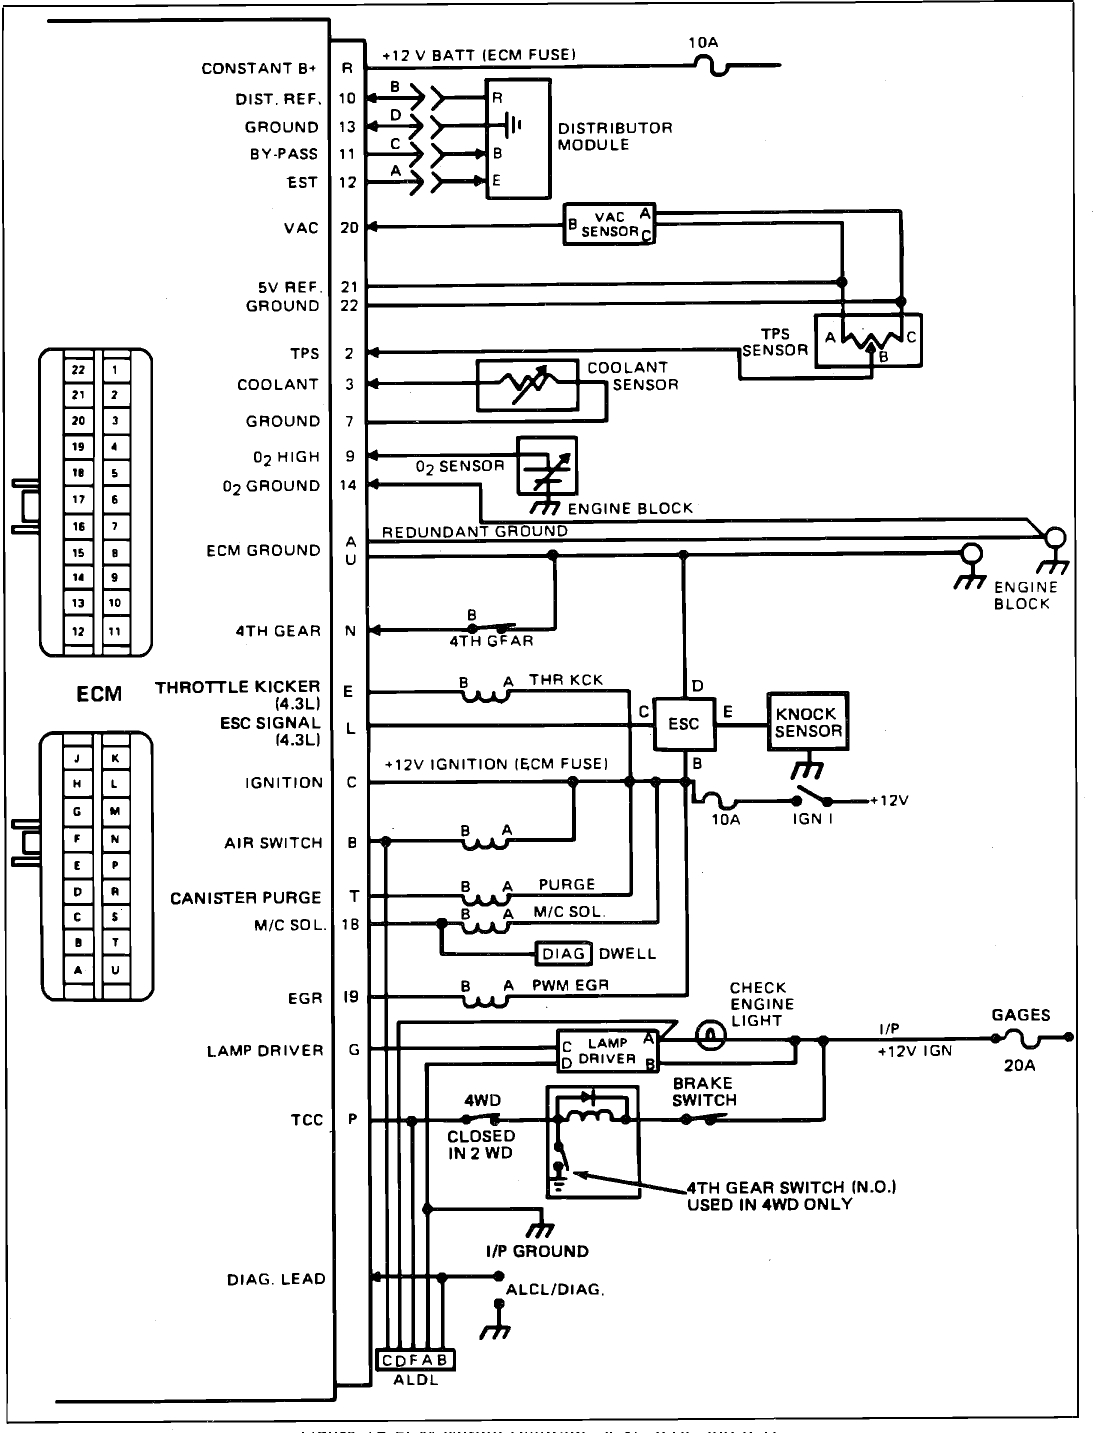 Infiniti I30 1999 Fuse Box Diagram 99 G20 Wiring Library I Need A With Colors 1993 Chevy 1995